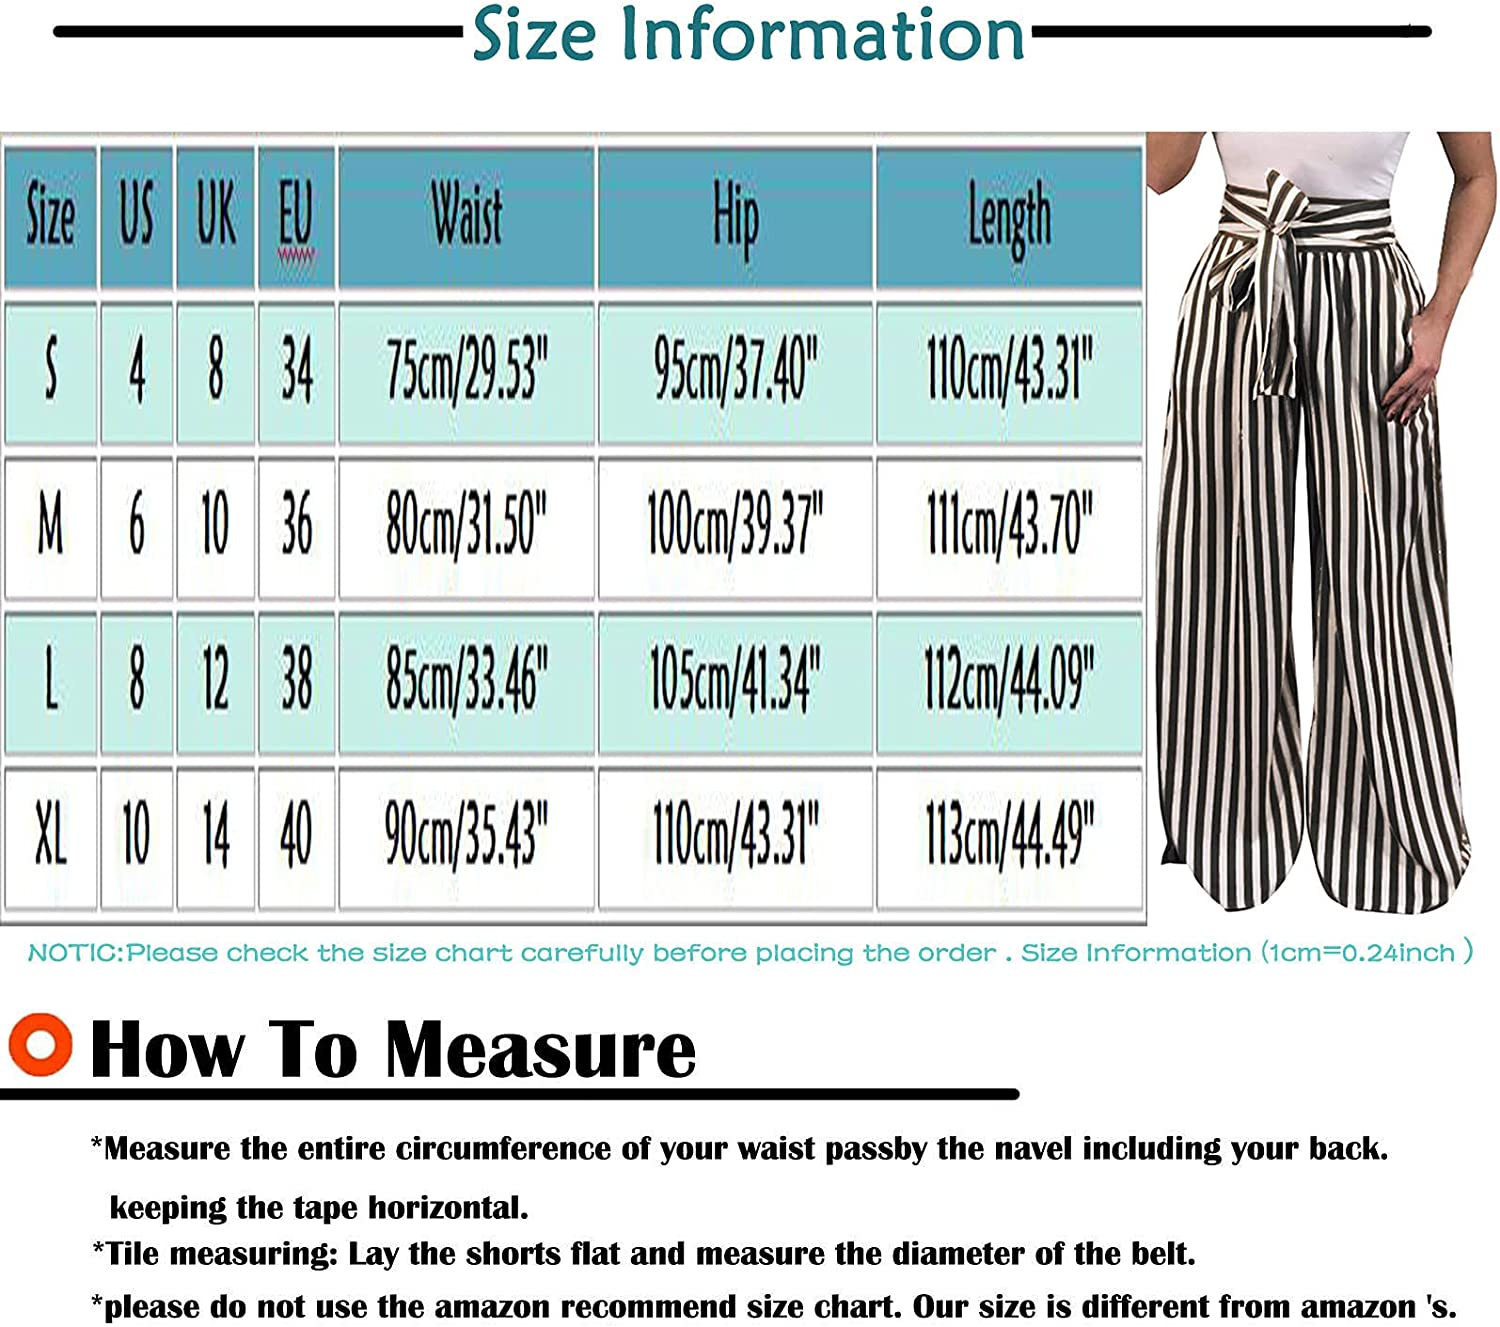 VonVonCo Flowy Pants for Women Striped High Waist Baggy Pants Bandage Elastic Waist Casual Trousers